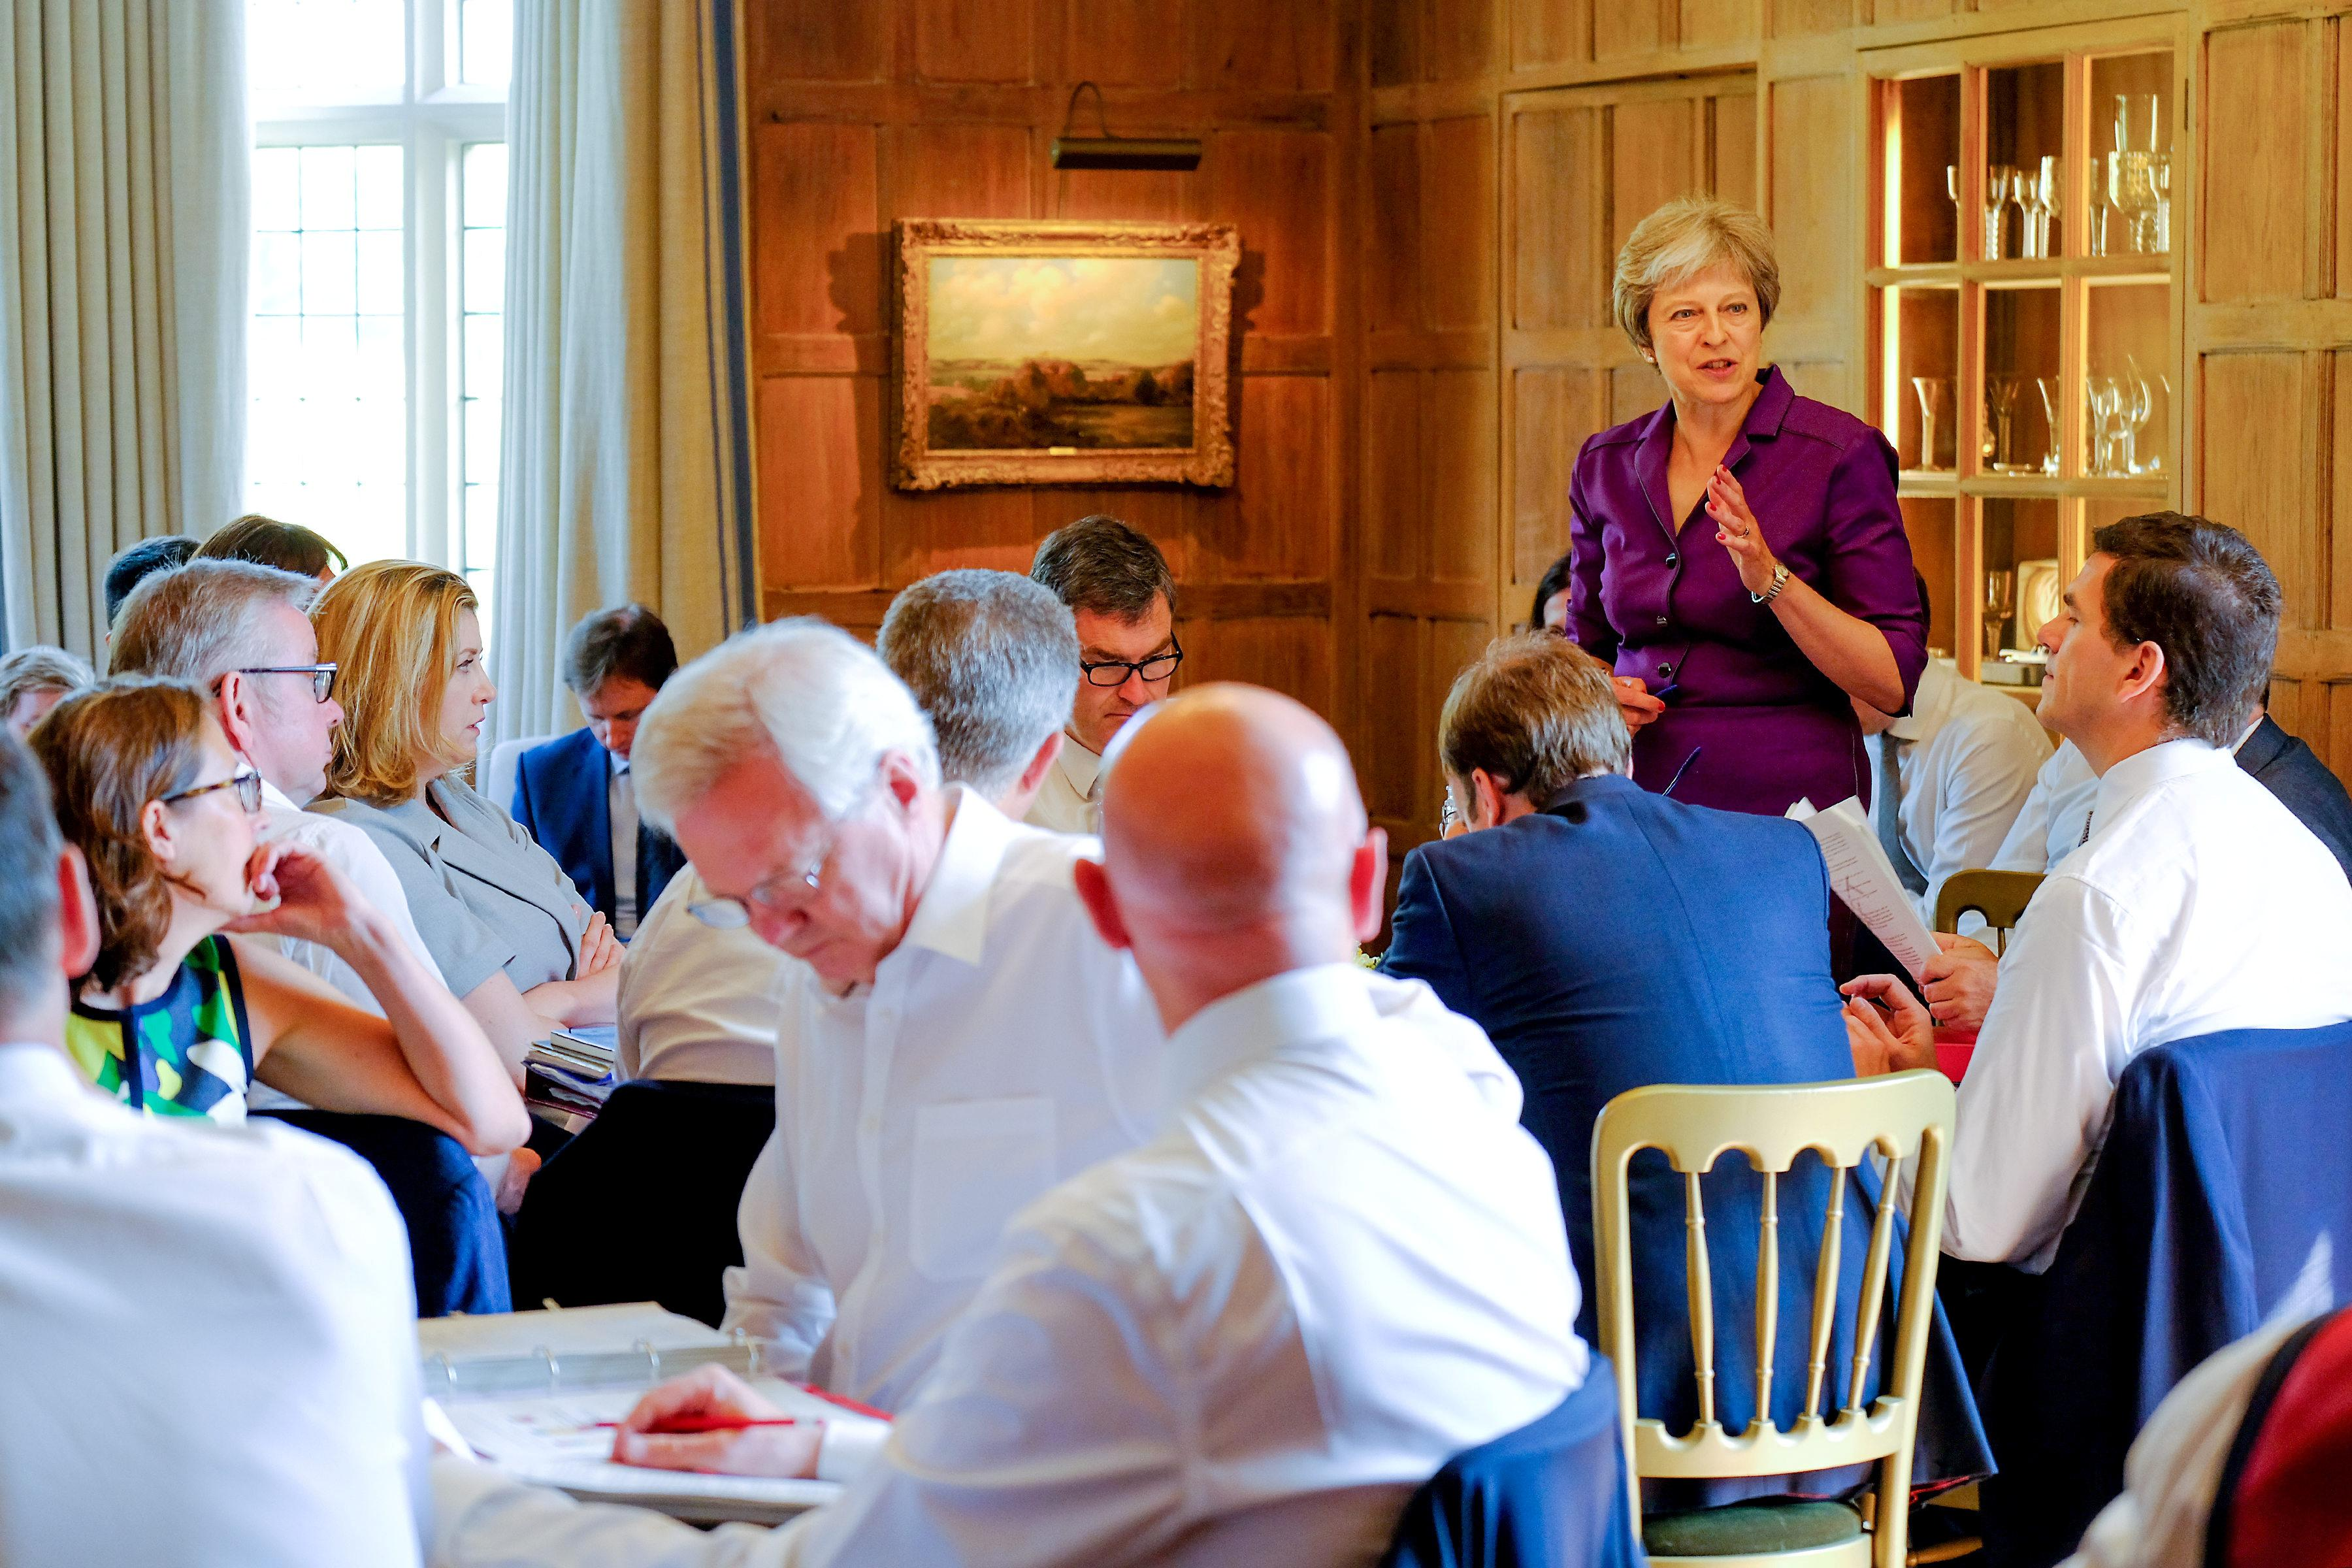 Theresa May Chequers Meeting